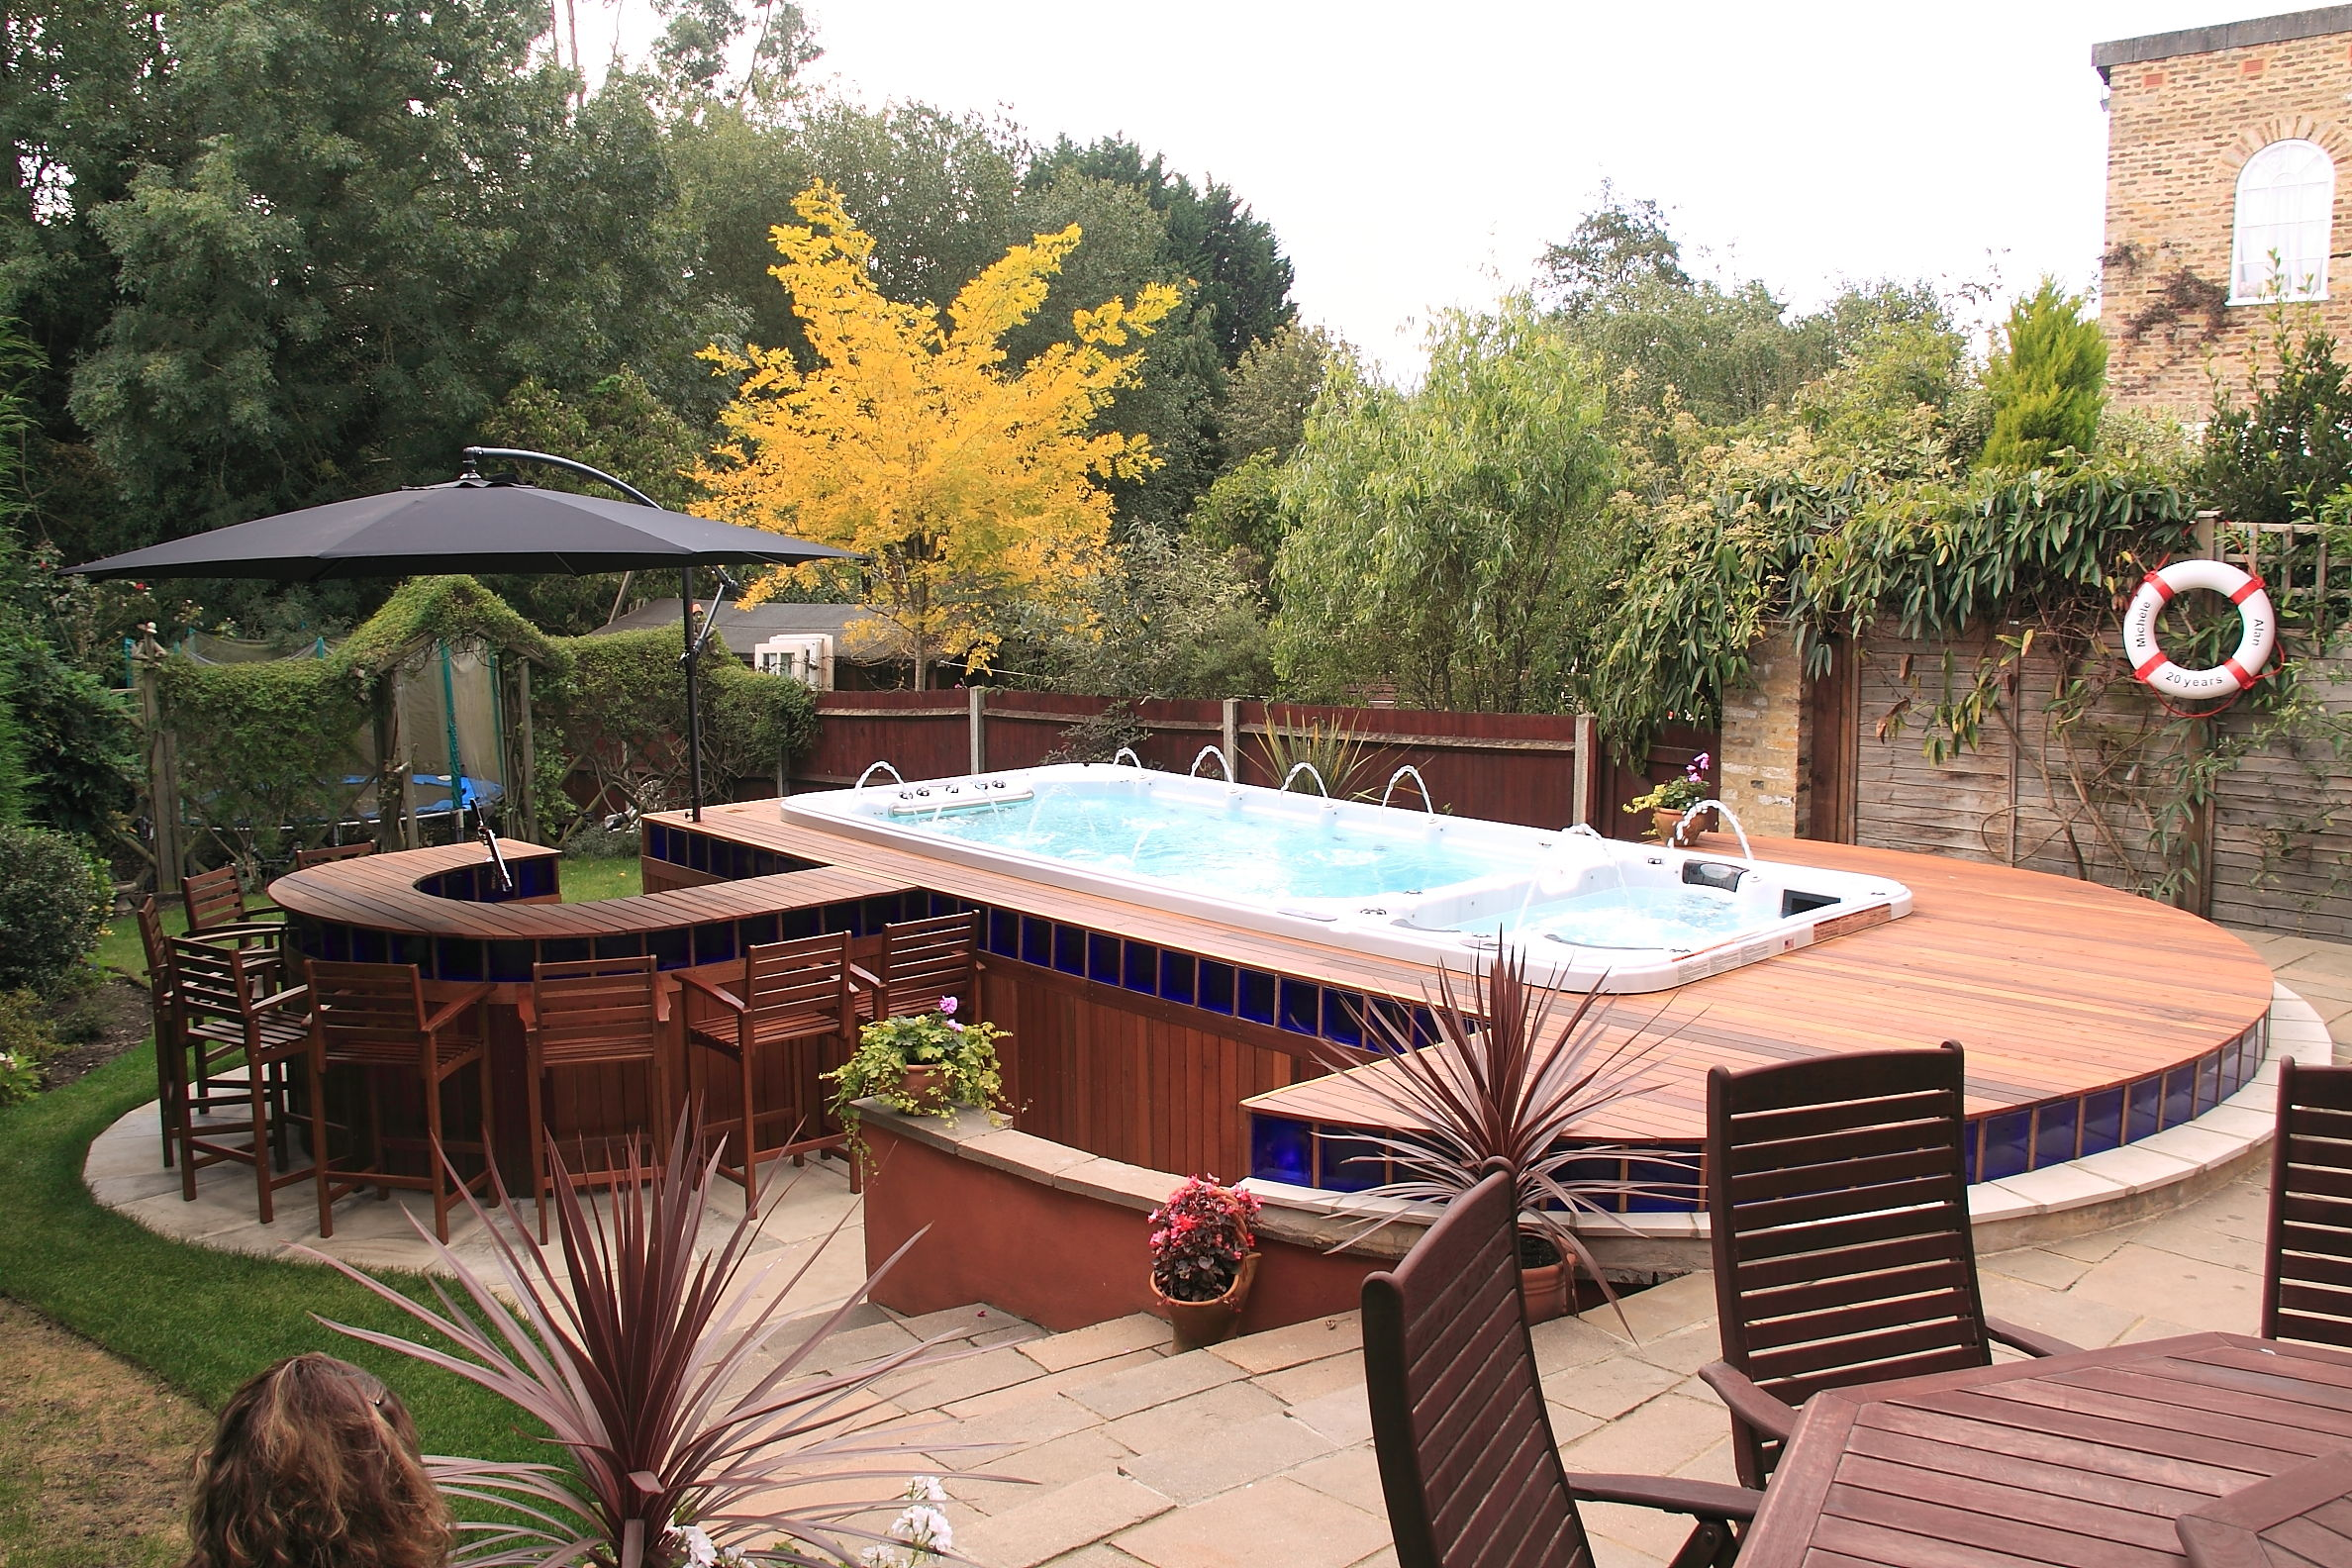 info of mkua best leisure pools sun spas archive gmedia country garden now we posts page carry